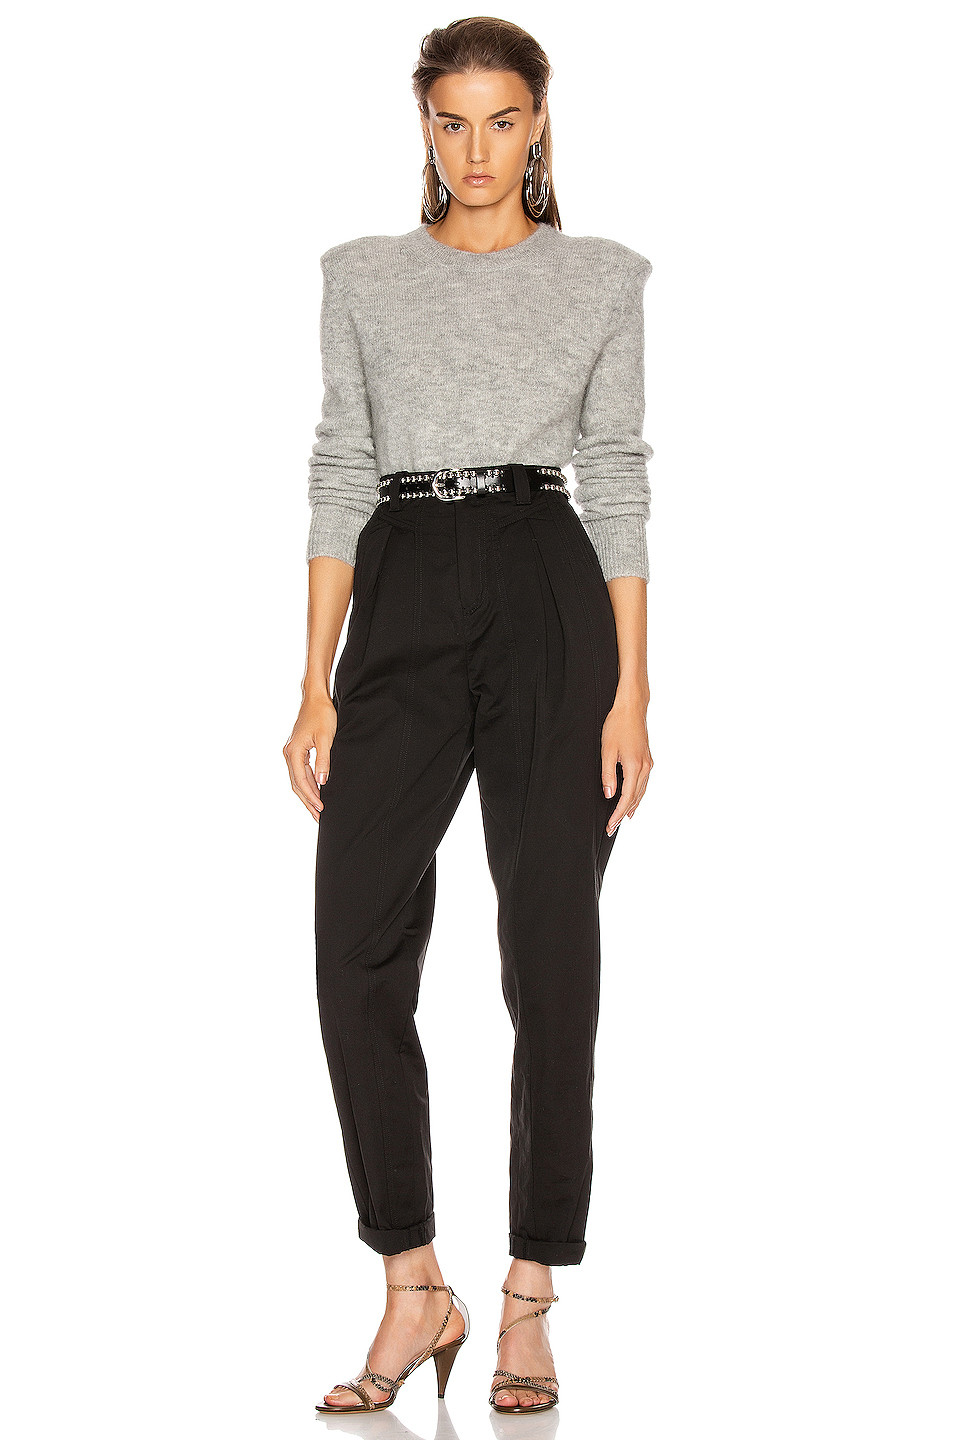 Isabel Marant Flora Sweater with Padded Shoulders $740